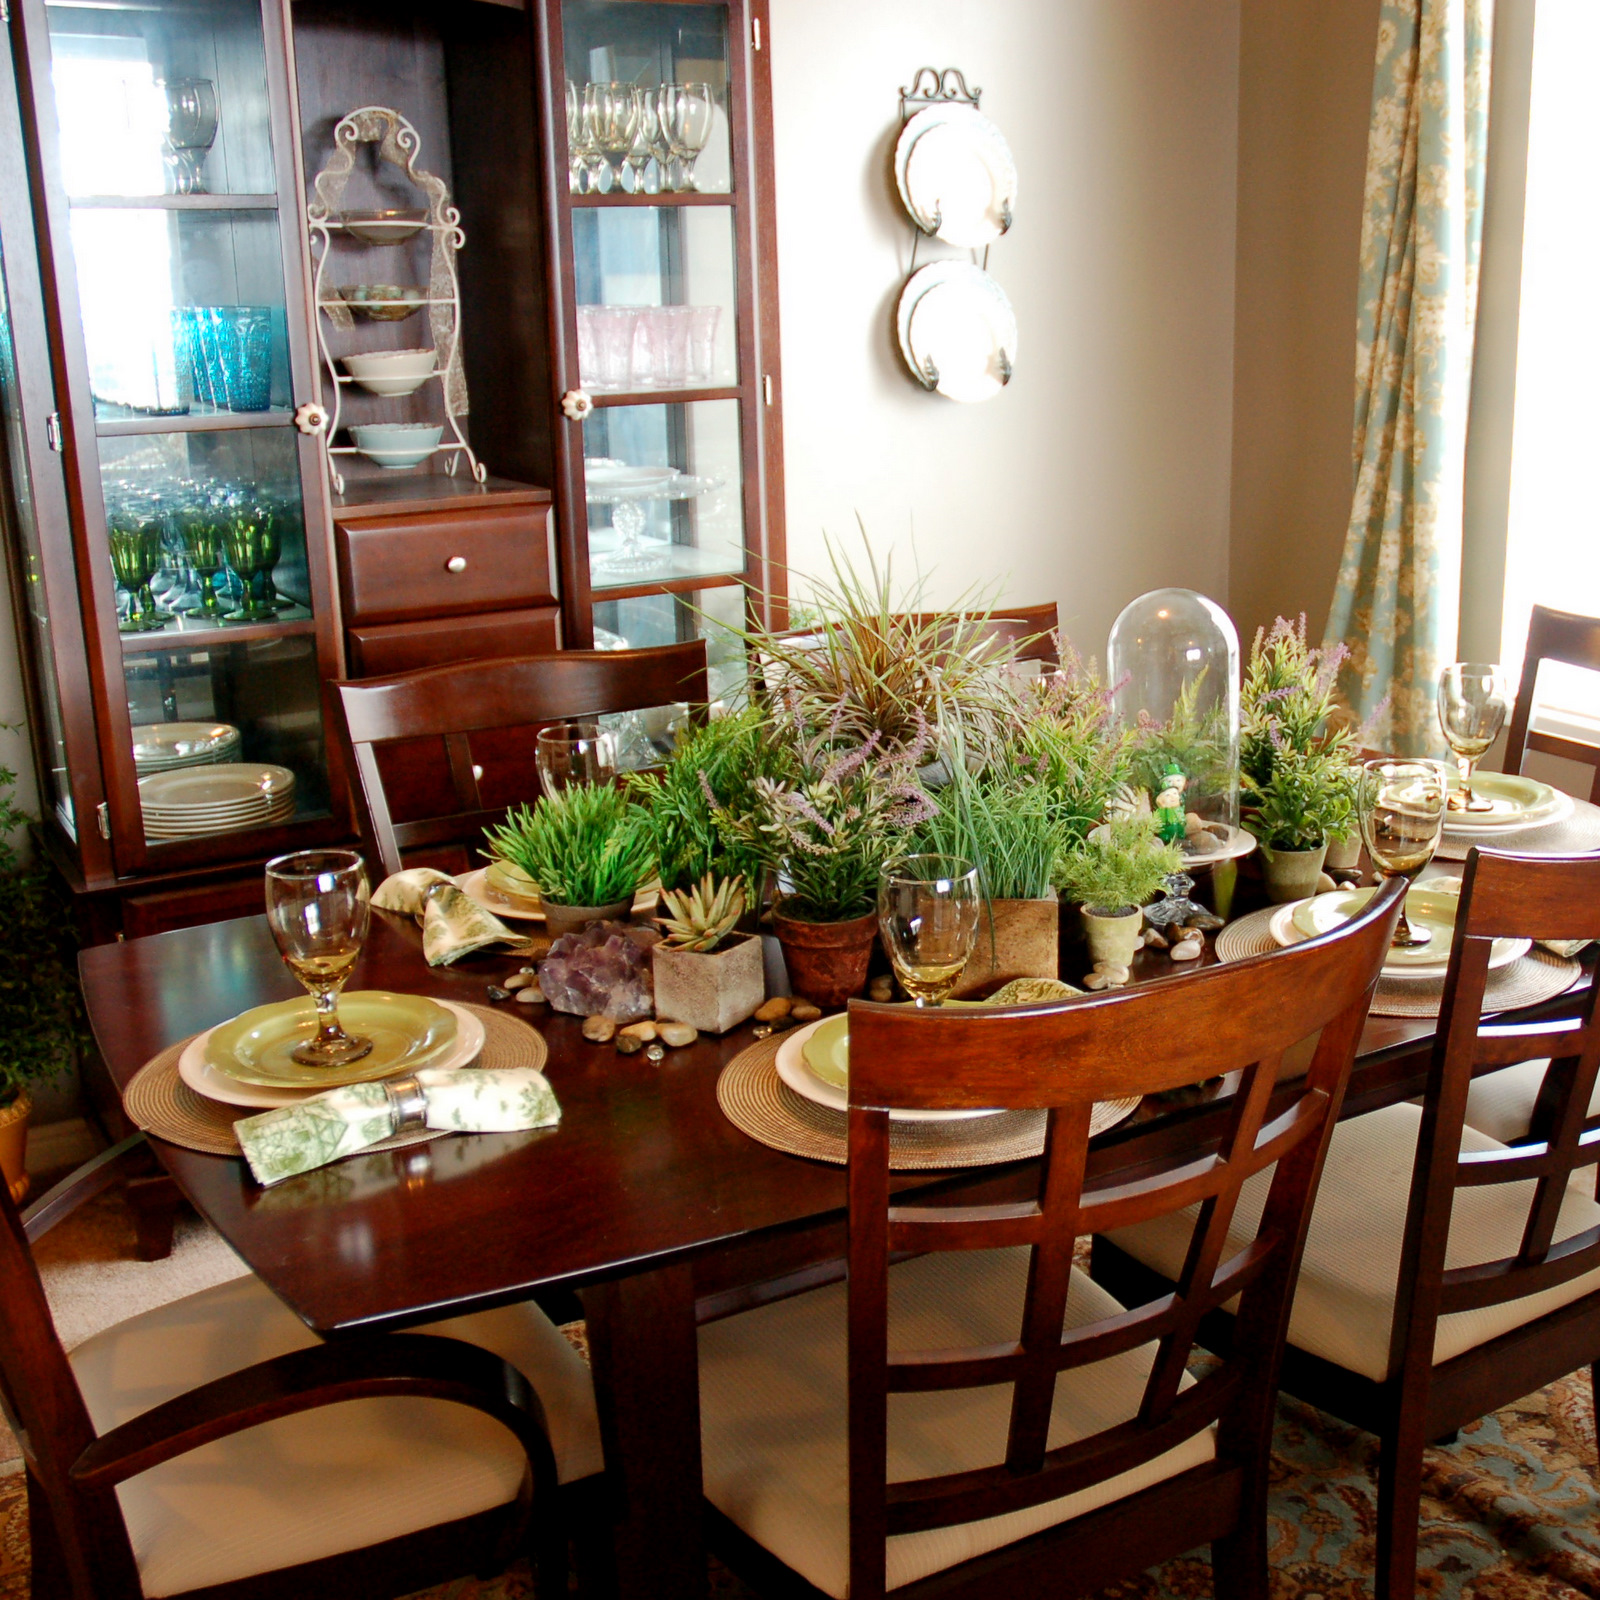 Restlessrisa: St. Patty's Day In My Formal Dining Room